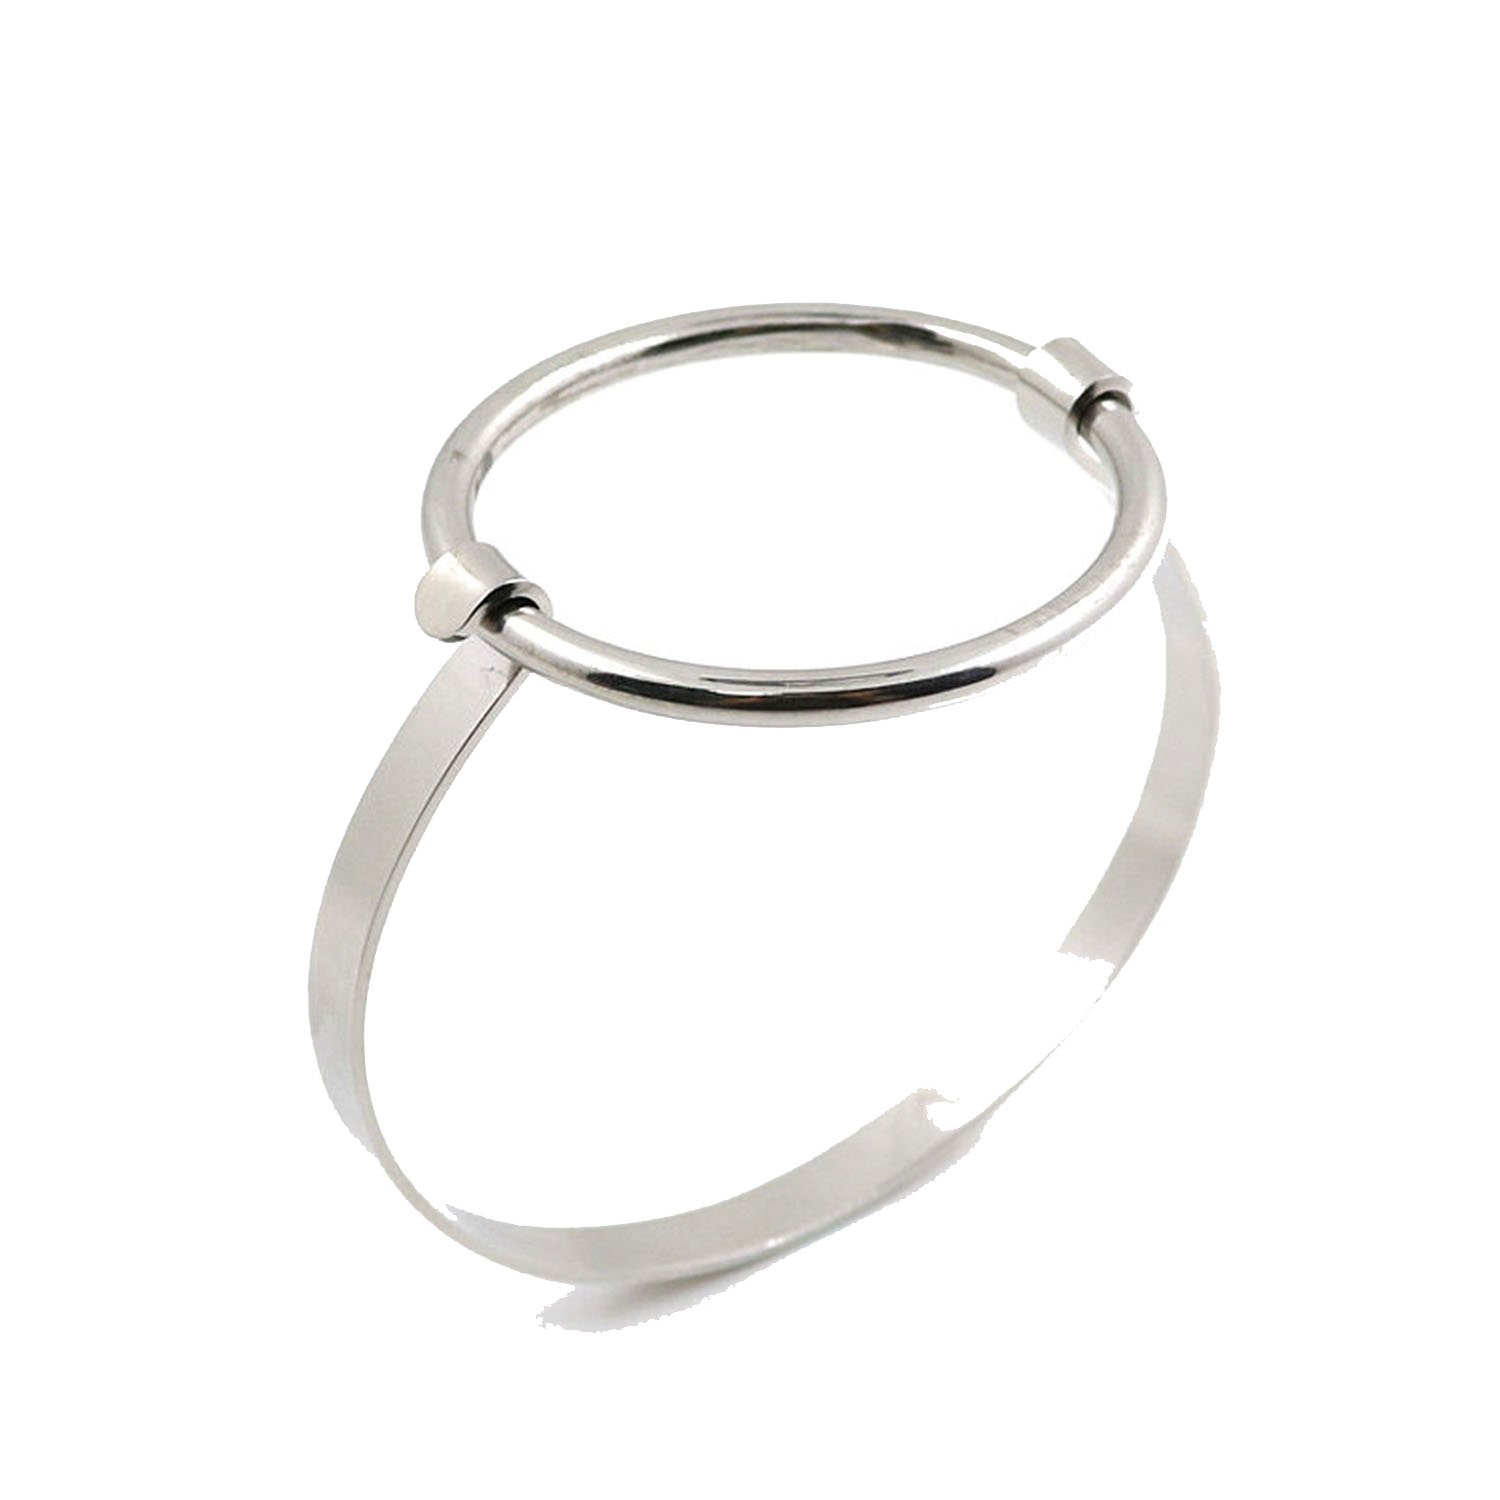 Find-Excellence 5mm Width Minimalist Jewelry Simple Charm Big Round Bangle Wire Cuff Bracelet Lovers' Gift,Silver